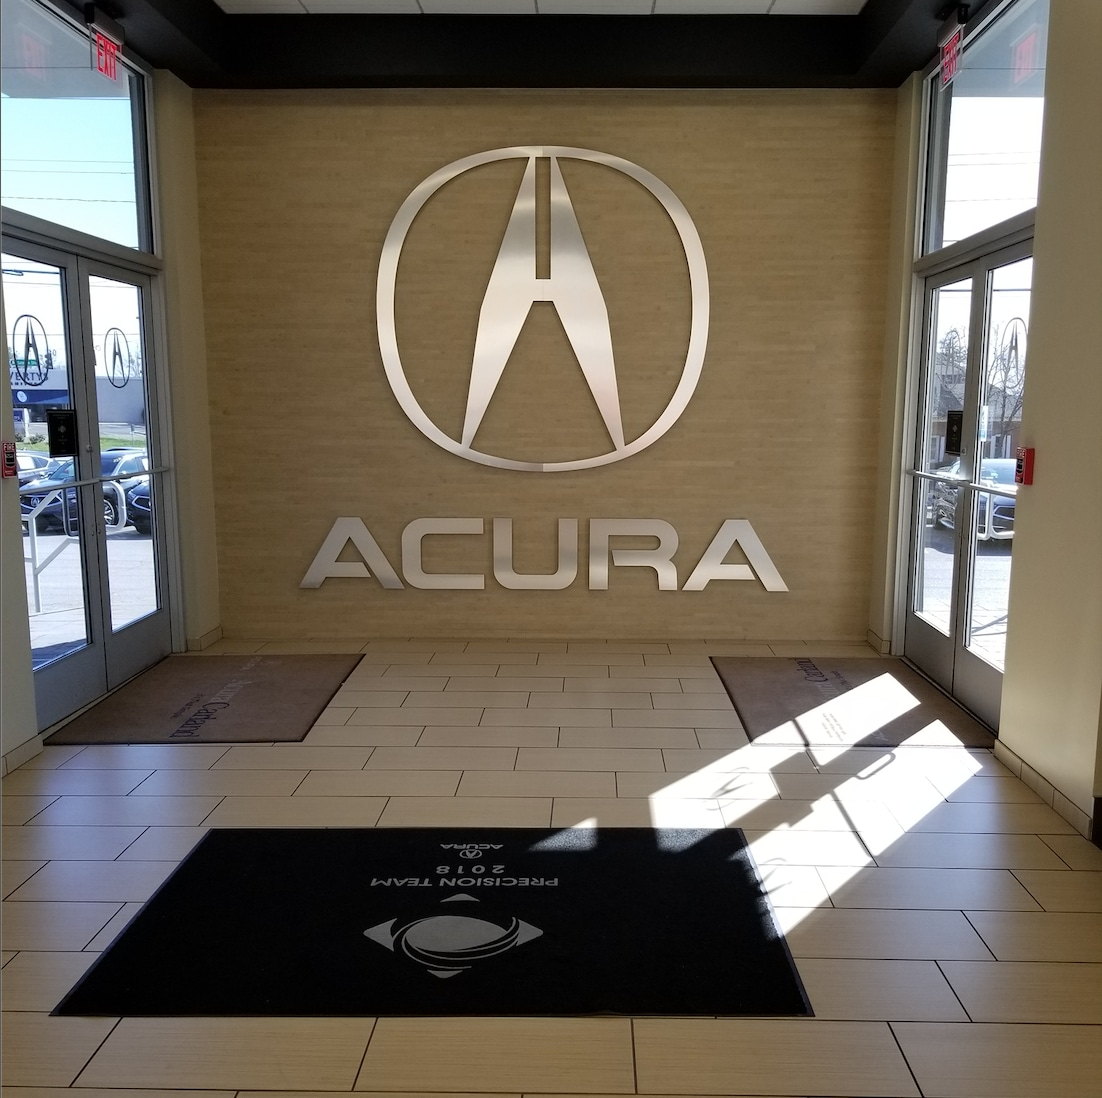 Acura Service & Repair Center